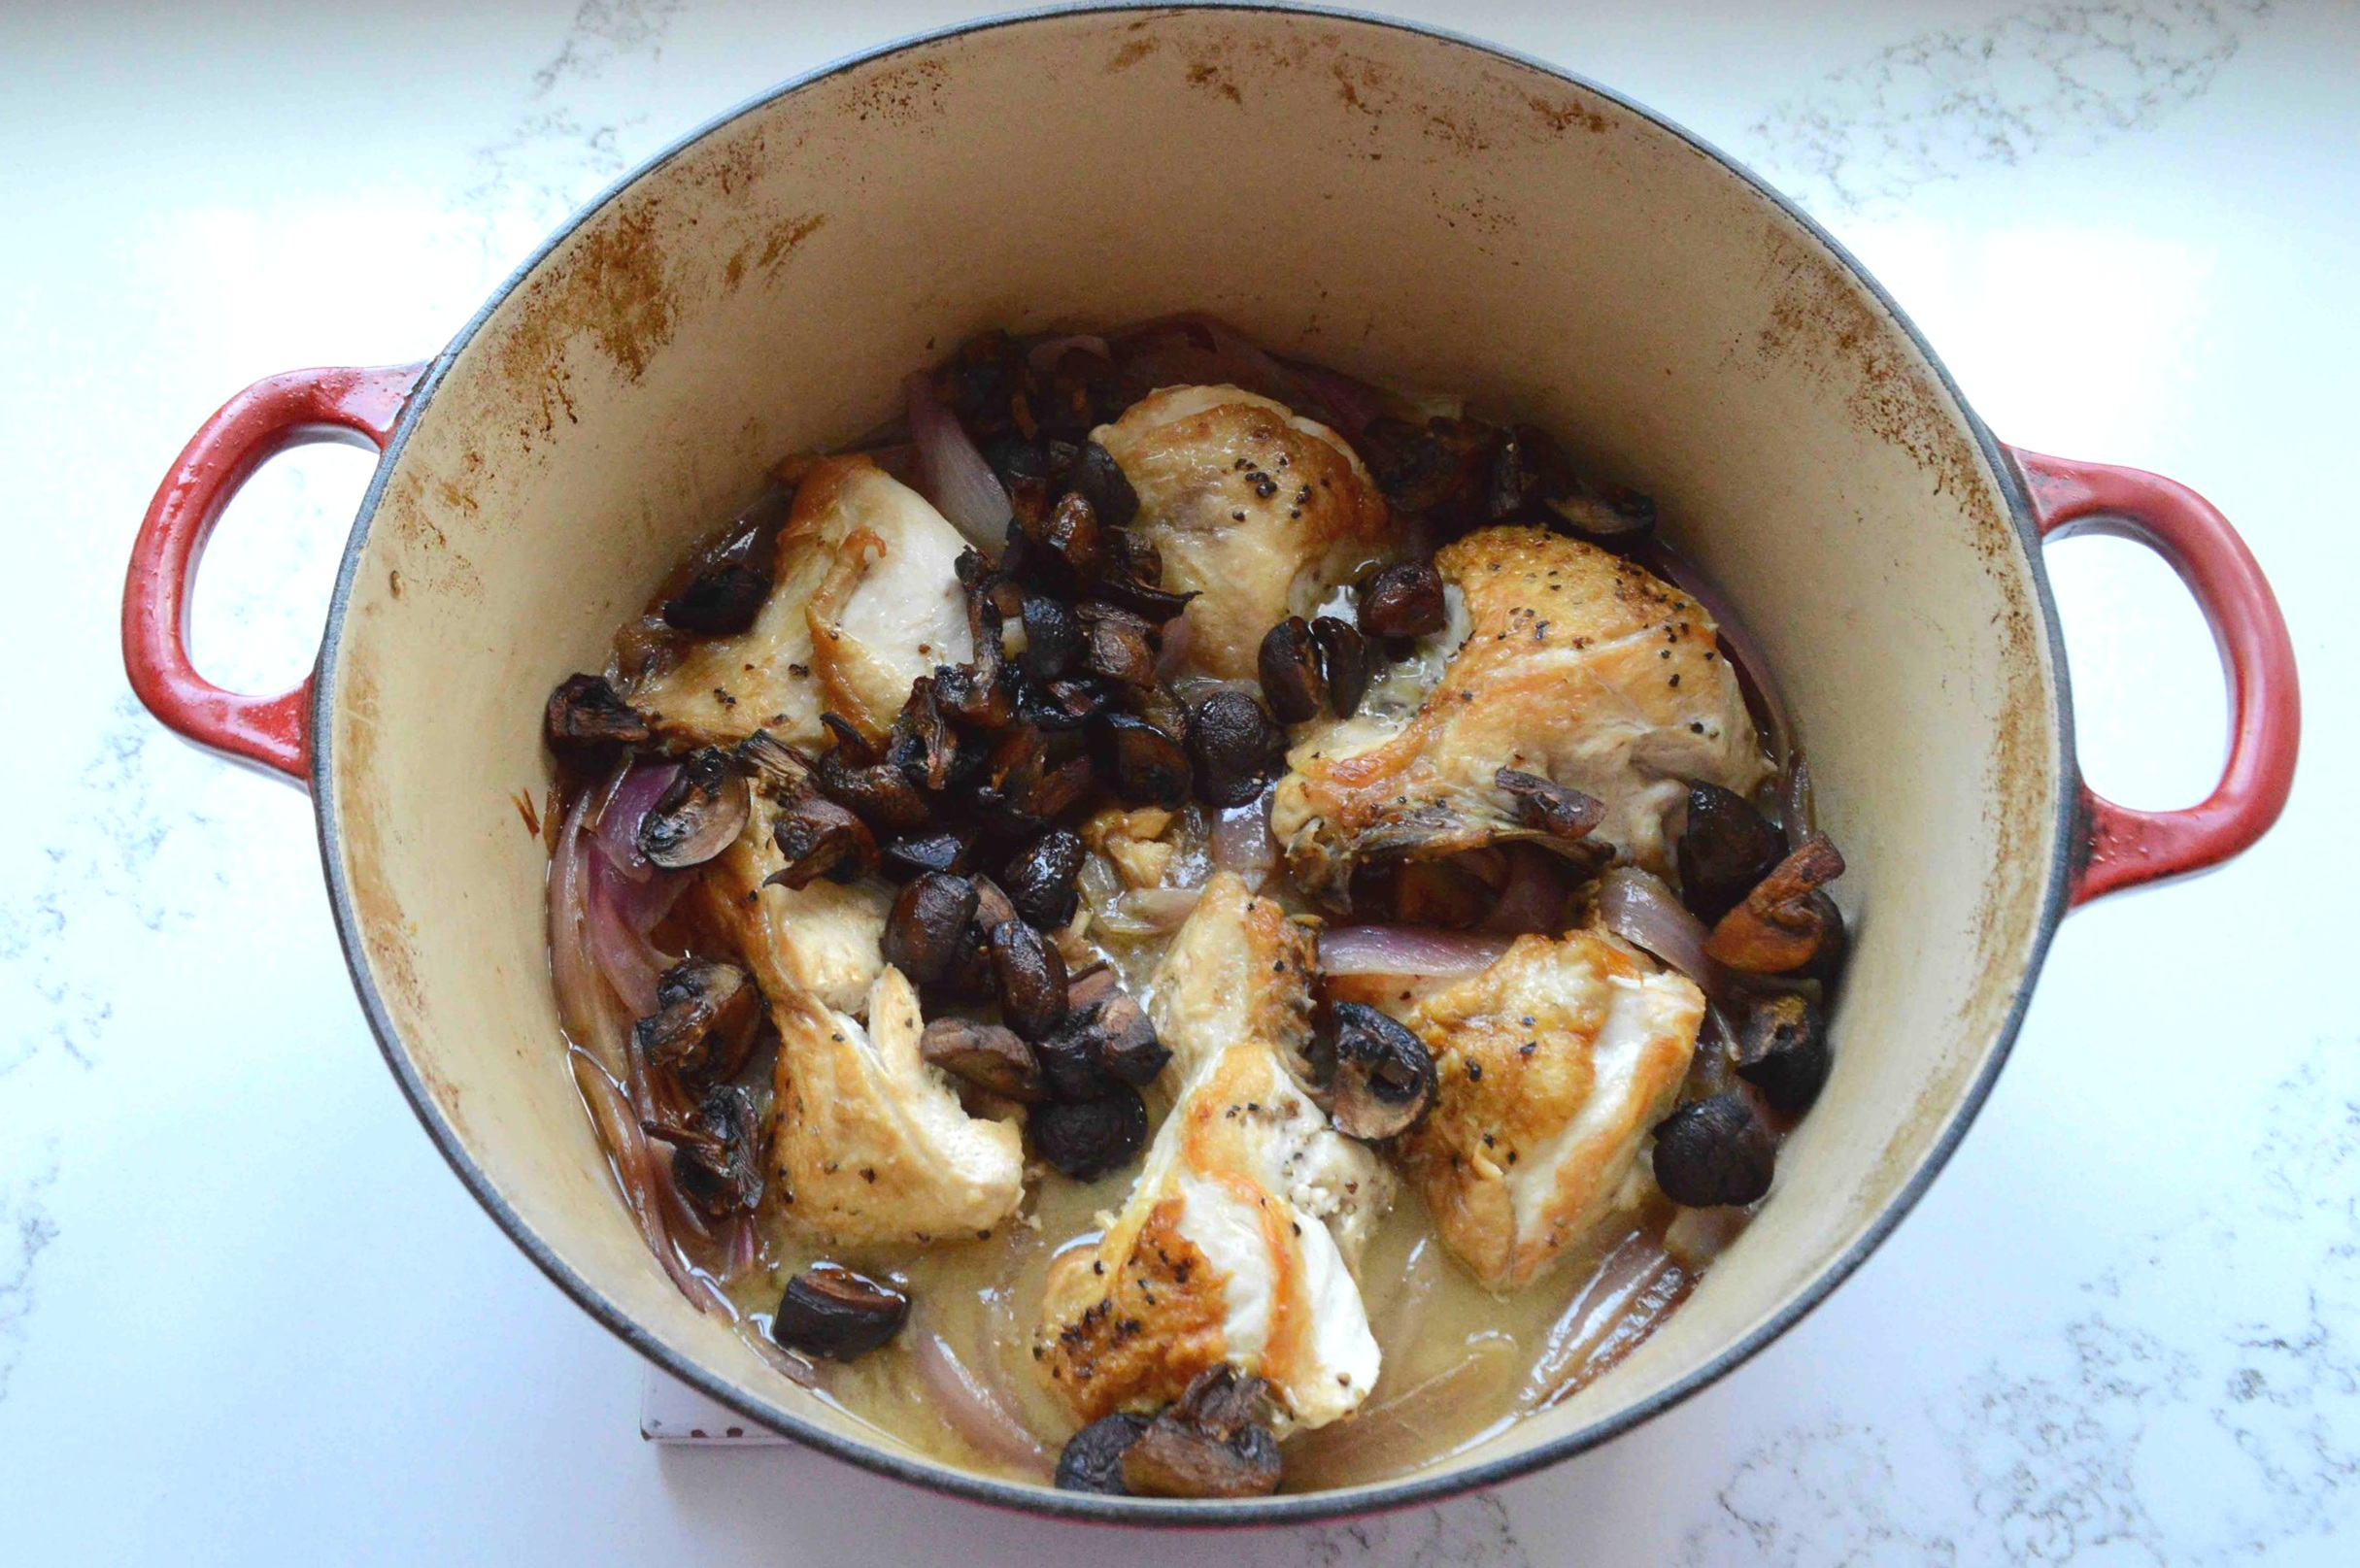 One-Pot+Vinegar+Chicken+with+Onions+and+Roasted+Mushrooms